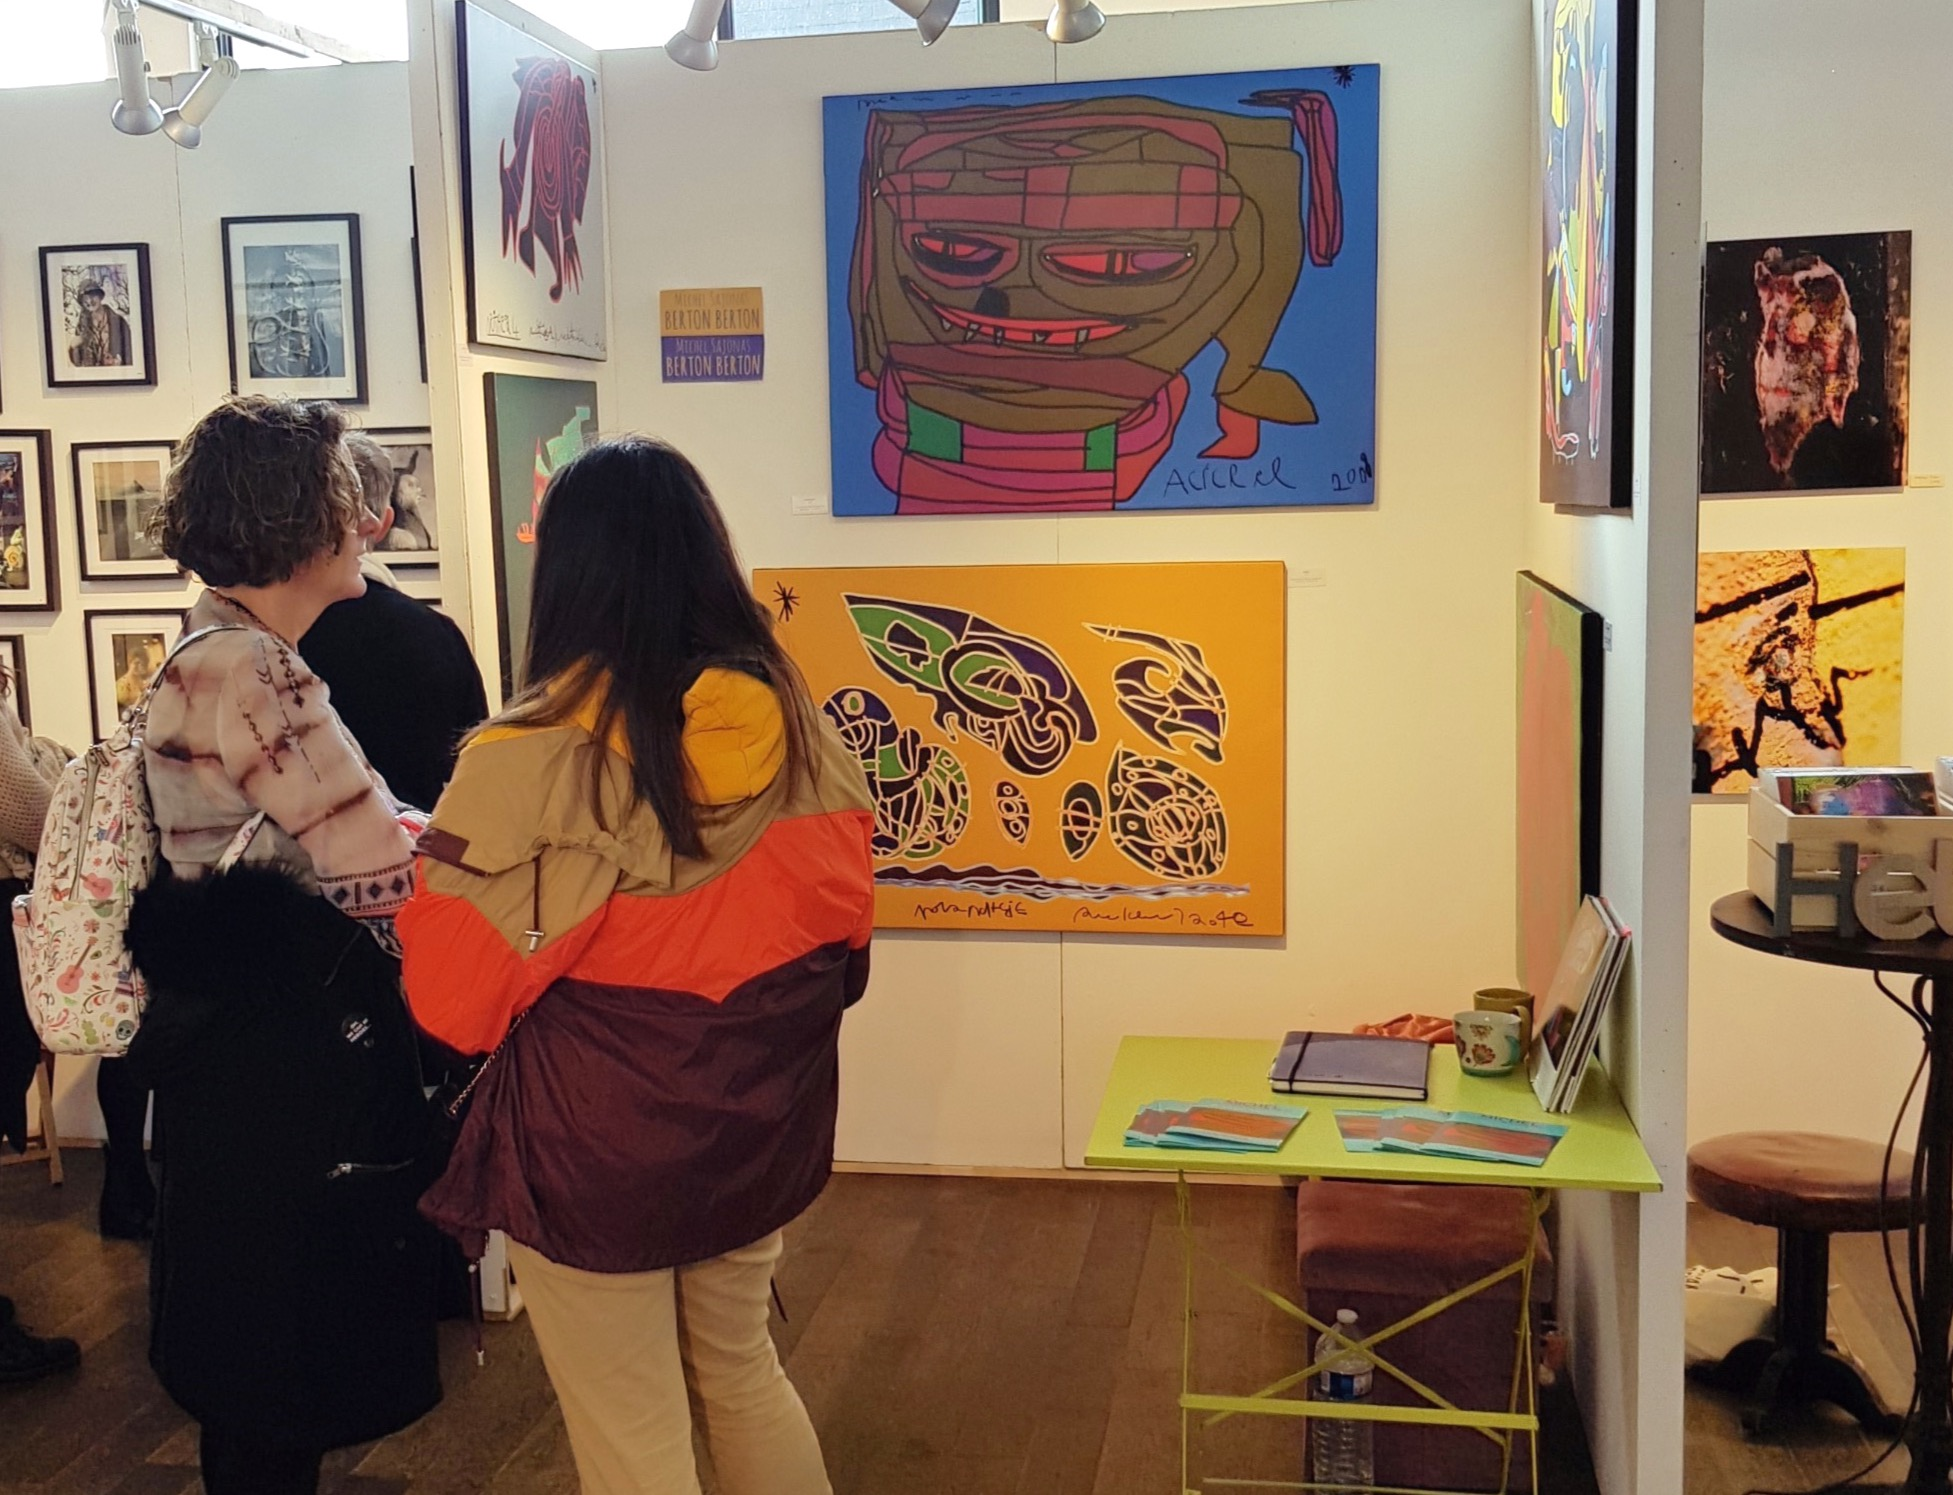 Salon d'art Abordable, 2020, Paris